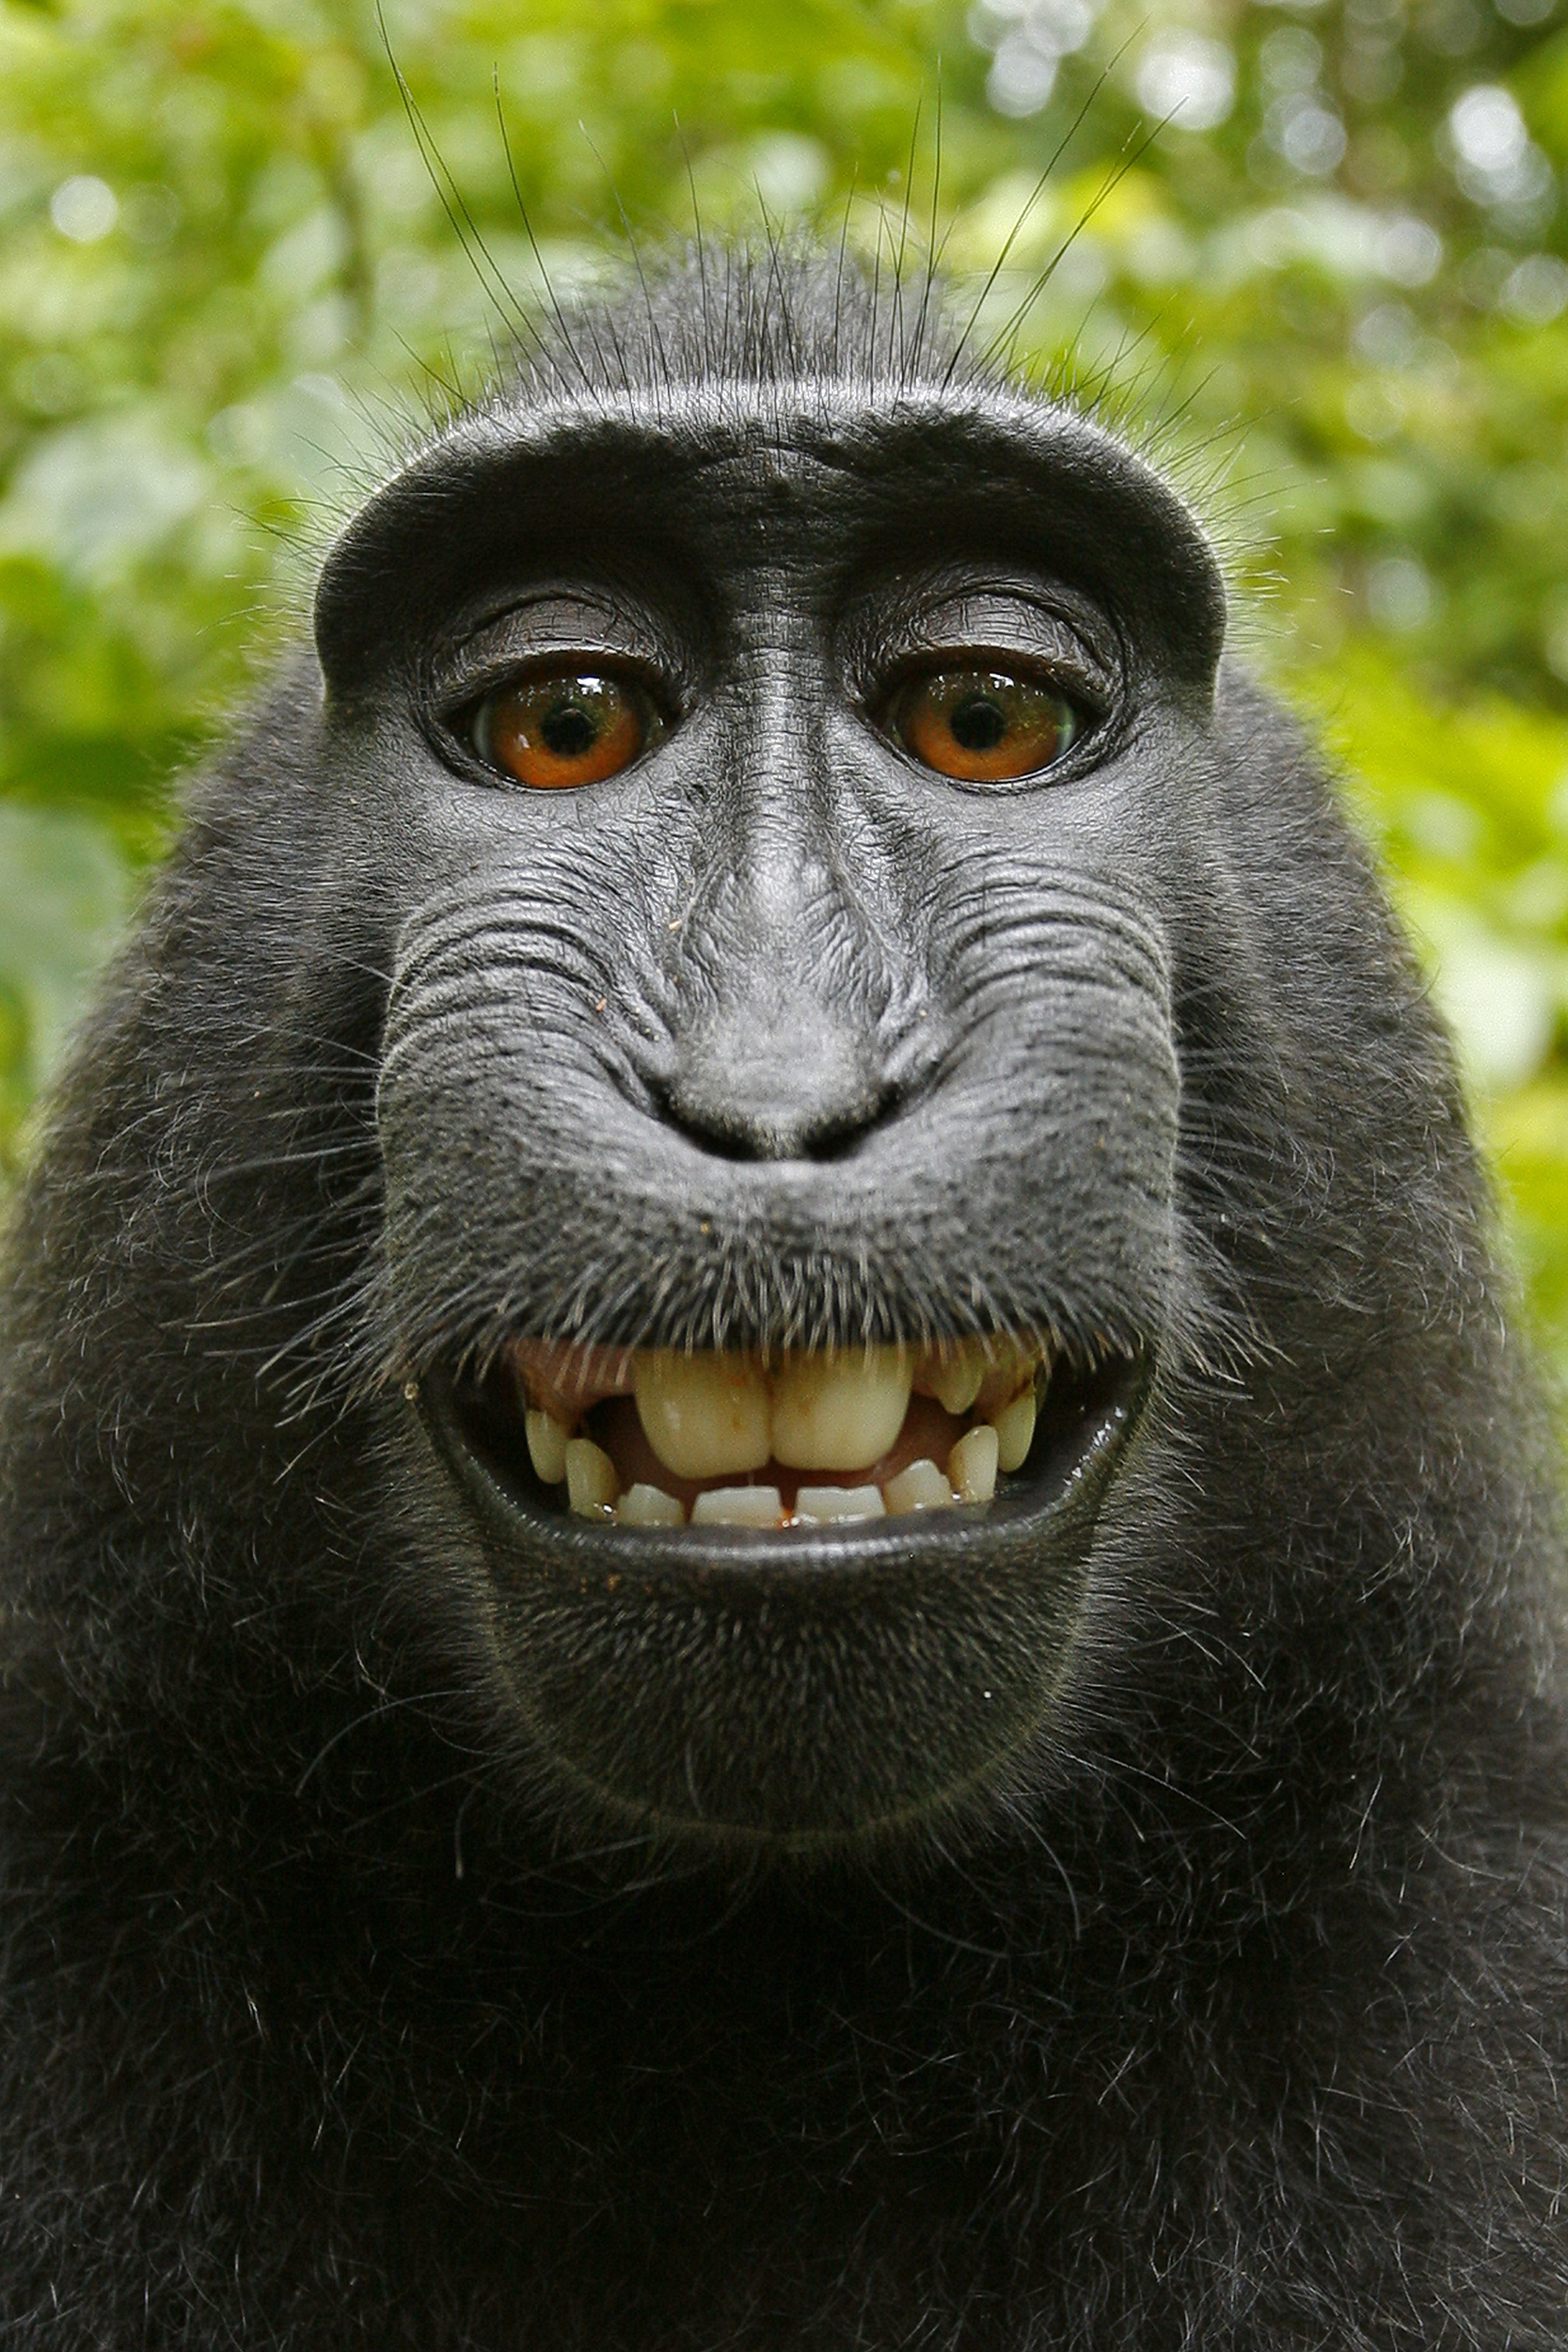 Deal Reached Over Copyright of Famous Monkey Selfie